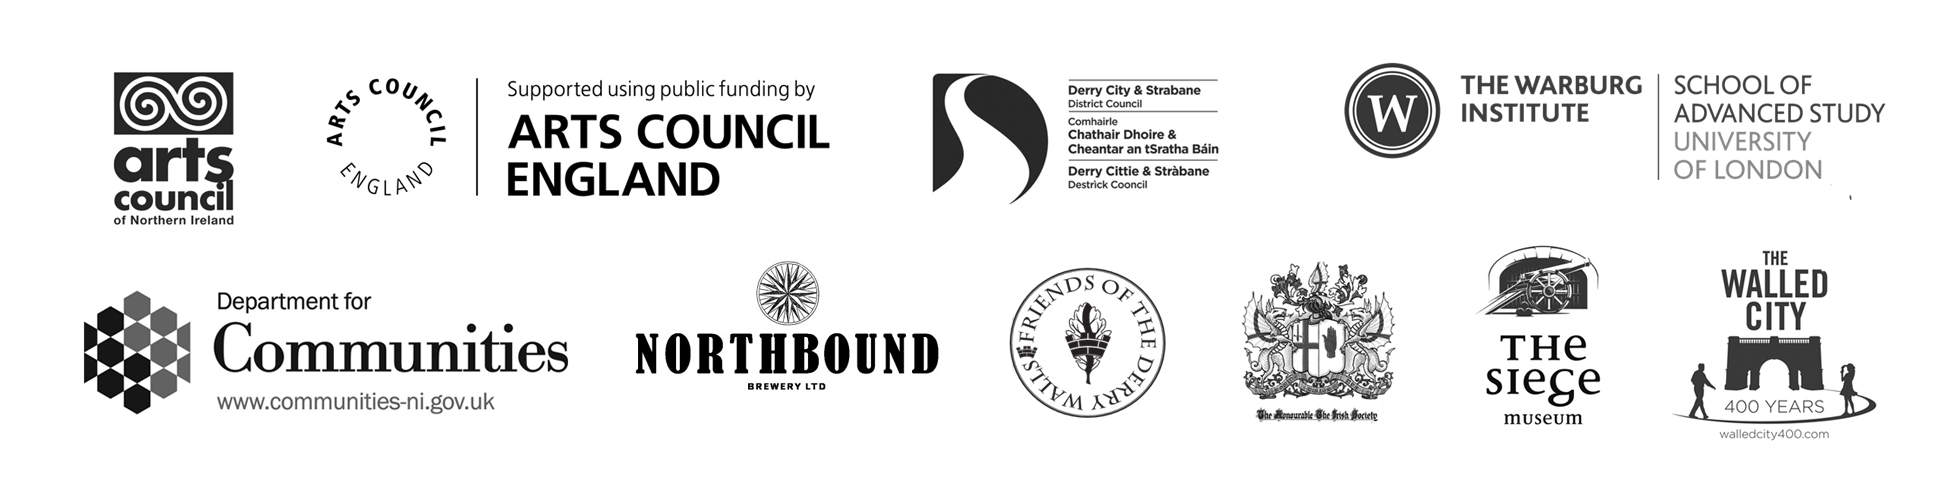 funders' logos for Candida Powell-Williams' exhibition at Void Gallery, 2019, and performance on the Derry Walls